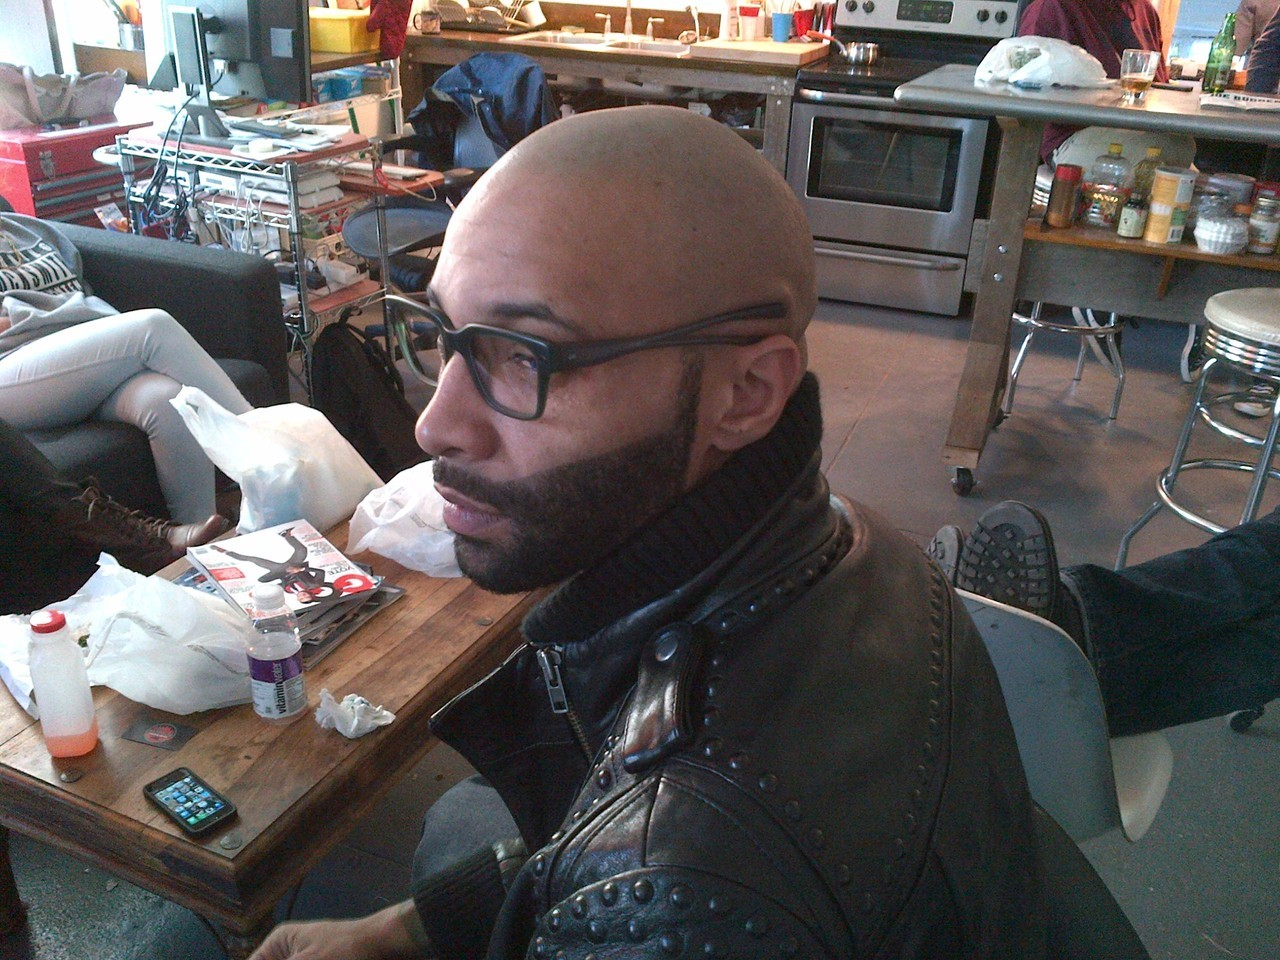 Check out this behind the scenes shot of Slaughterhouse's Joe Budden, in the Moss/Smoke optical Krieger style by Activist Eyewear